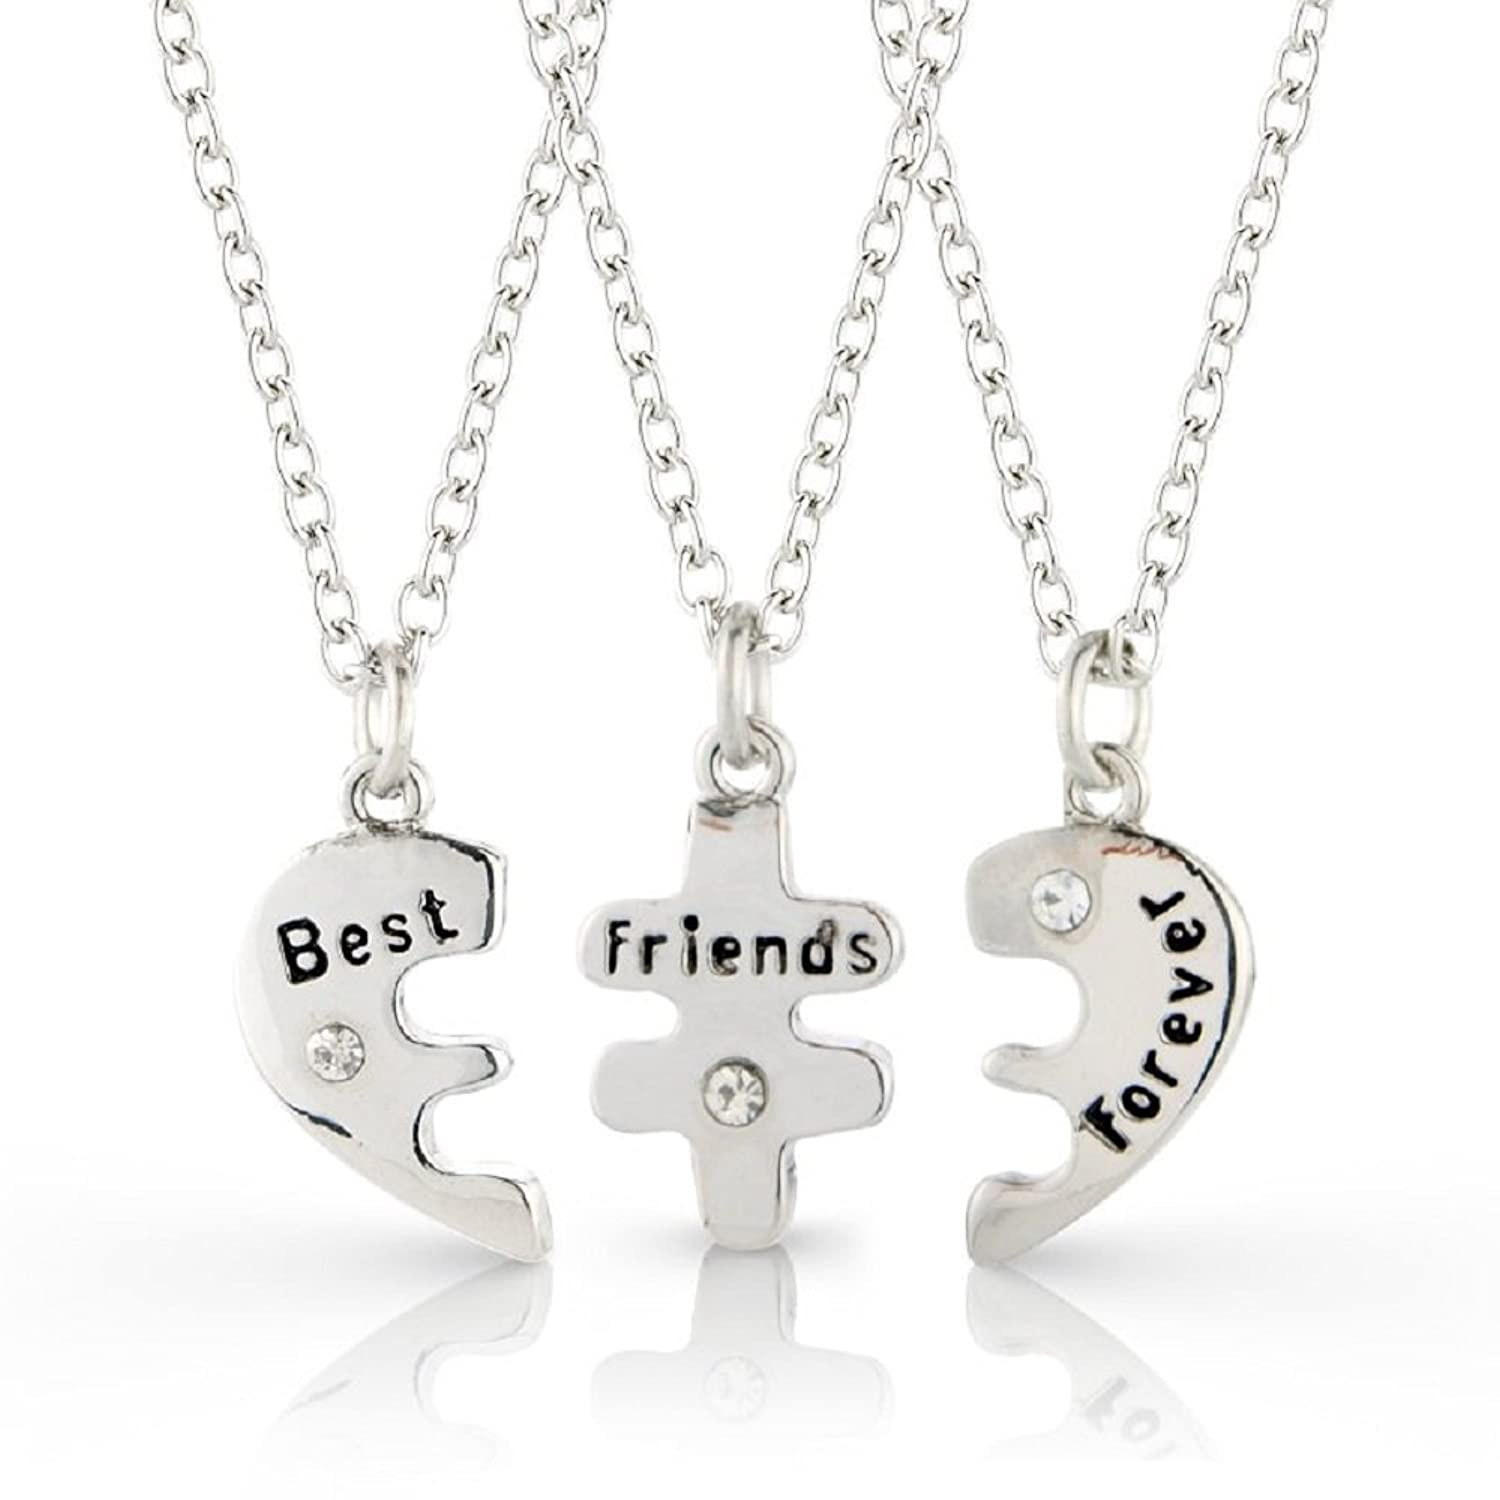 giving from necklace friends heart sweet pendant great necklaces lockets top pattern fashion gift women item best friendship in kids friend for locket